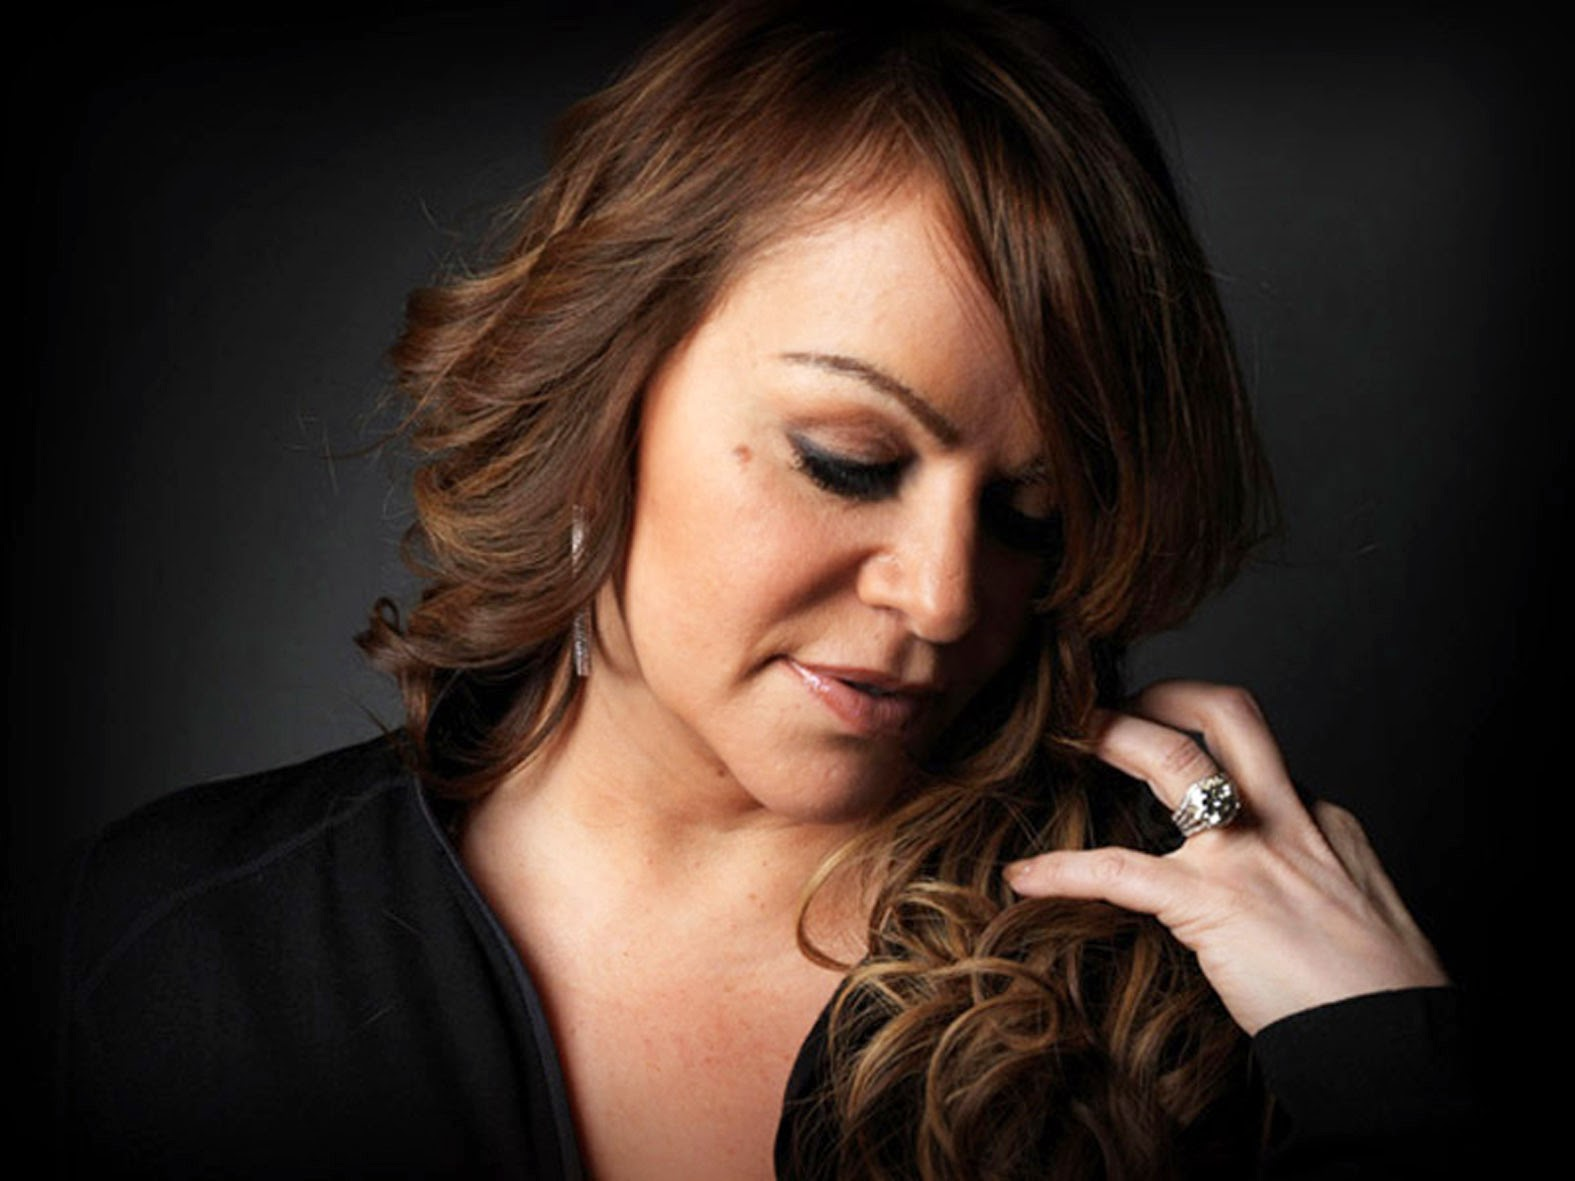 Fotos graficas accidente jenni rivera a488b8814de9